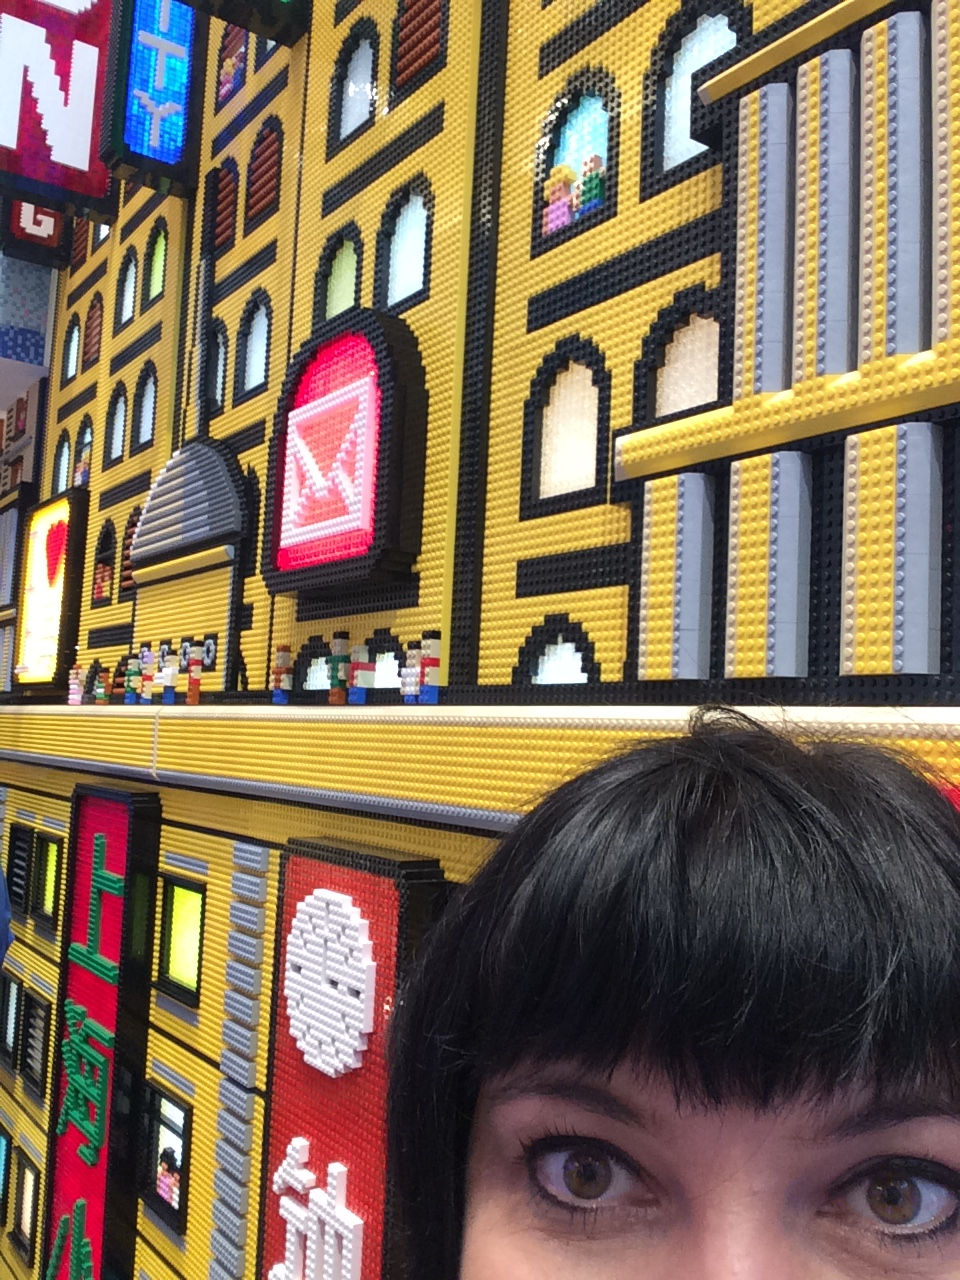 Lego built a city for the future in Shanghai